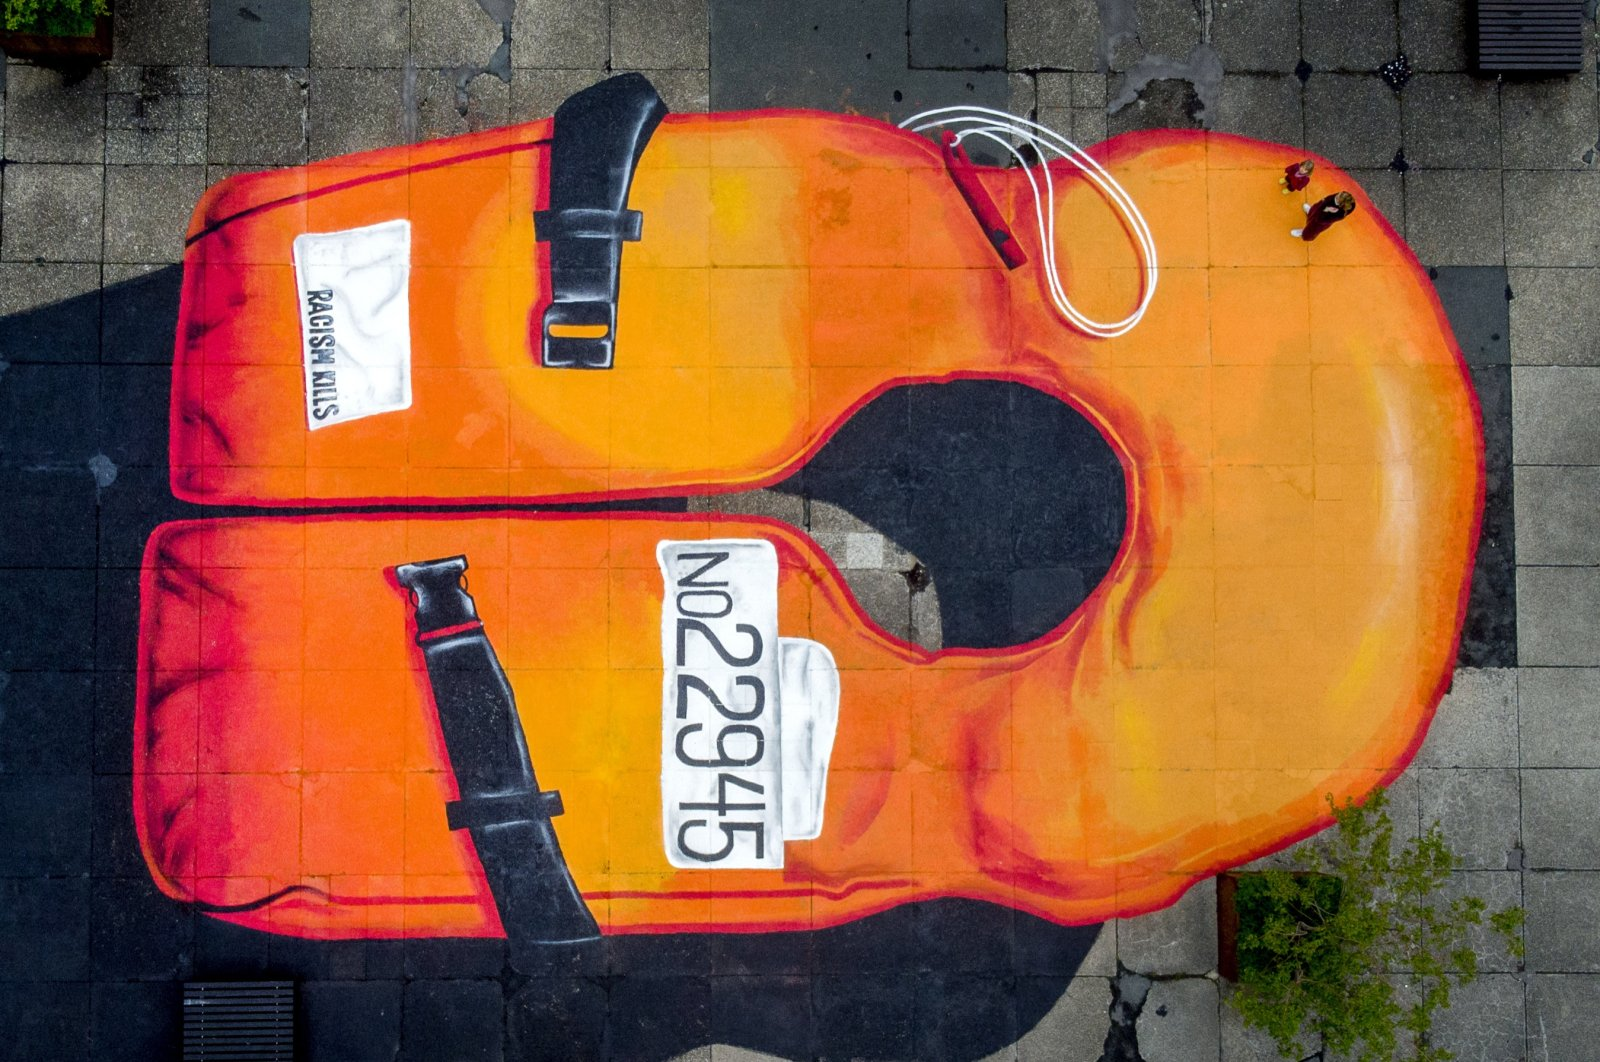 A 12 x 20 meter painting of a life jacket set on the grounds of a university campus in Frankfurt, Germany, May 27, 2021. (AP Photo)